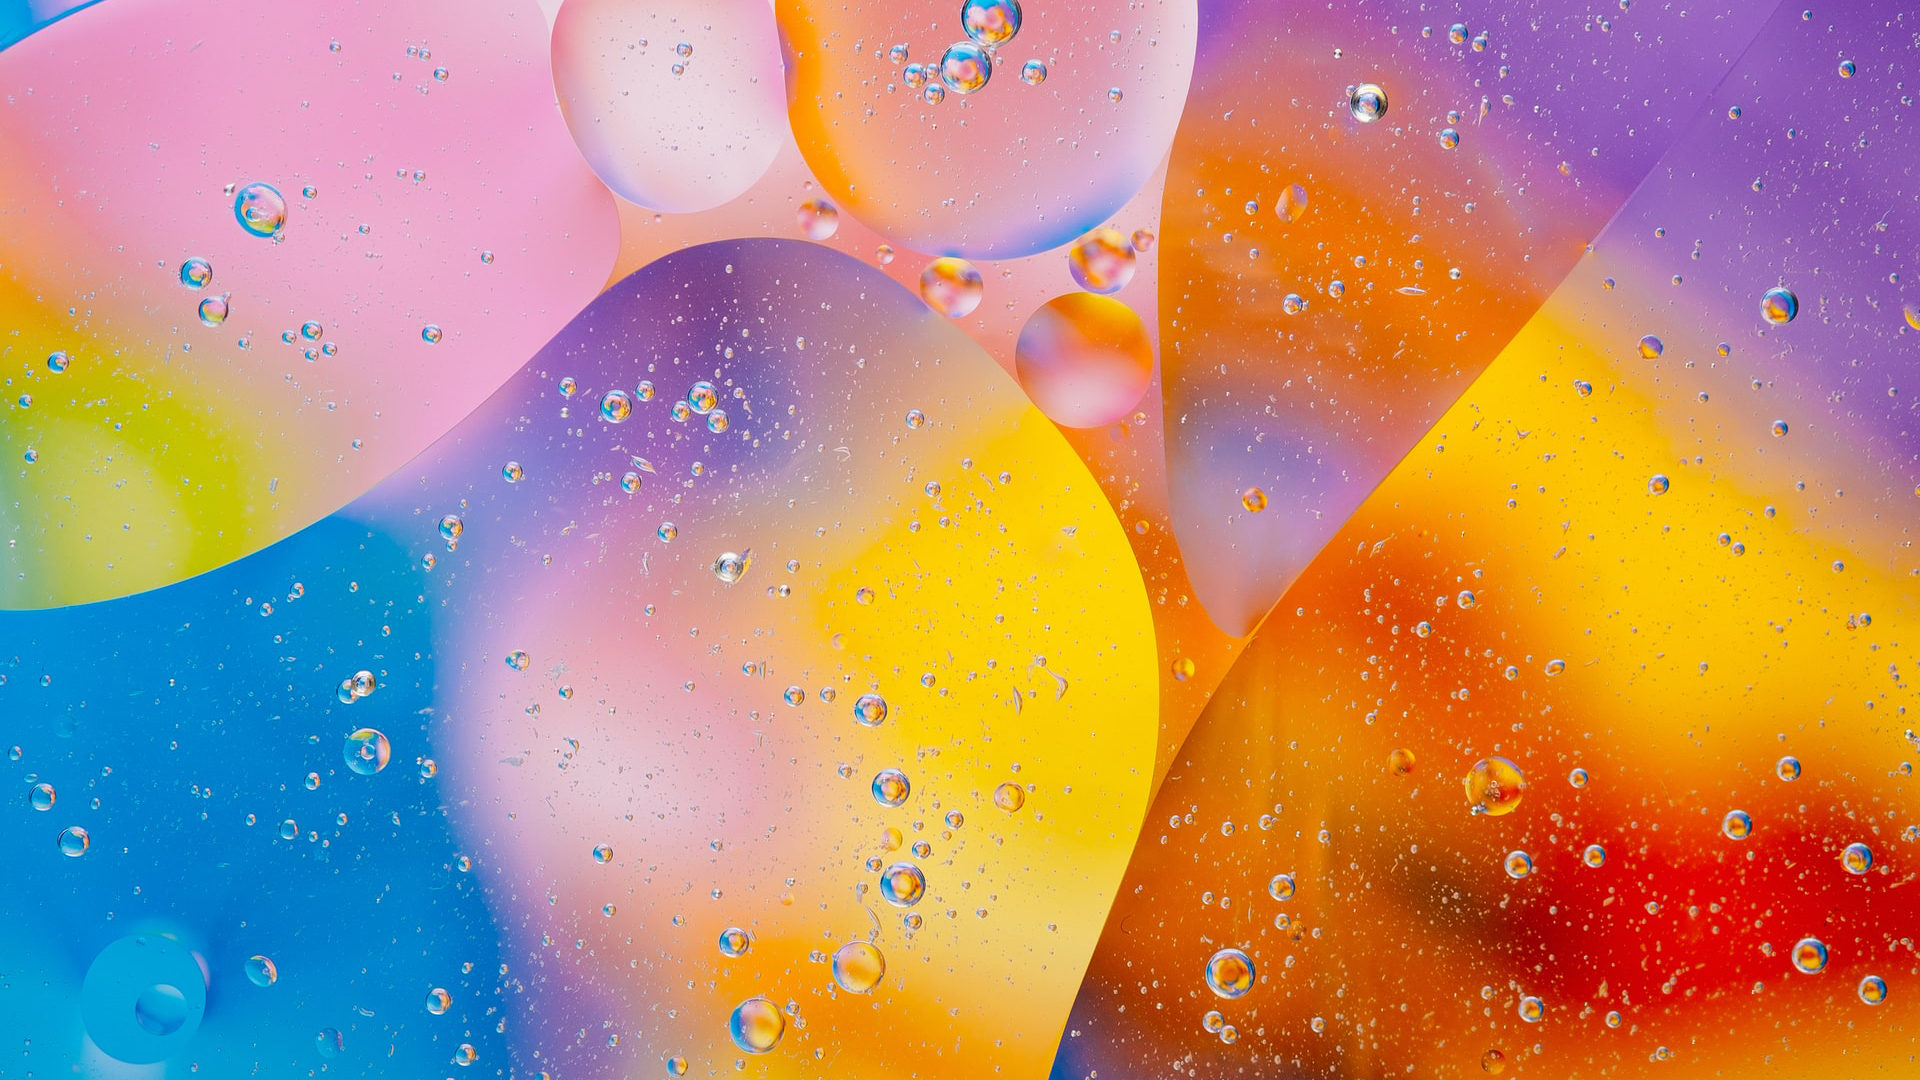 Abstract-02/Colorful Oil Bubbles HD.jpg Desktop